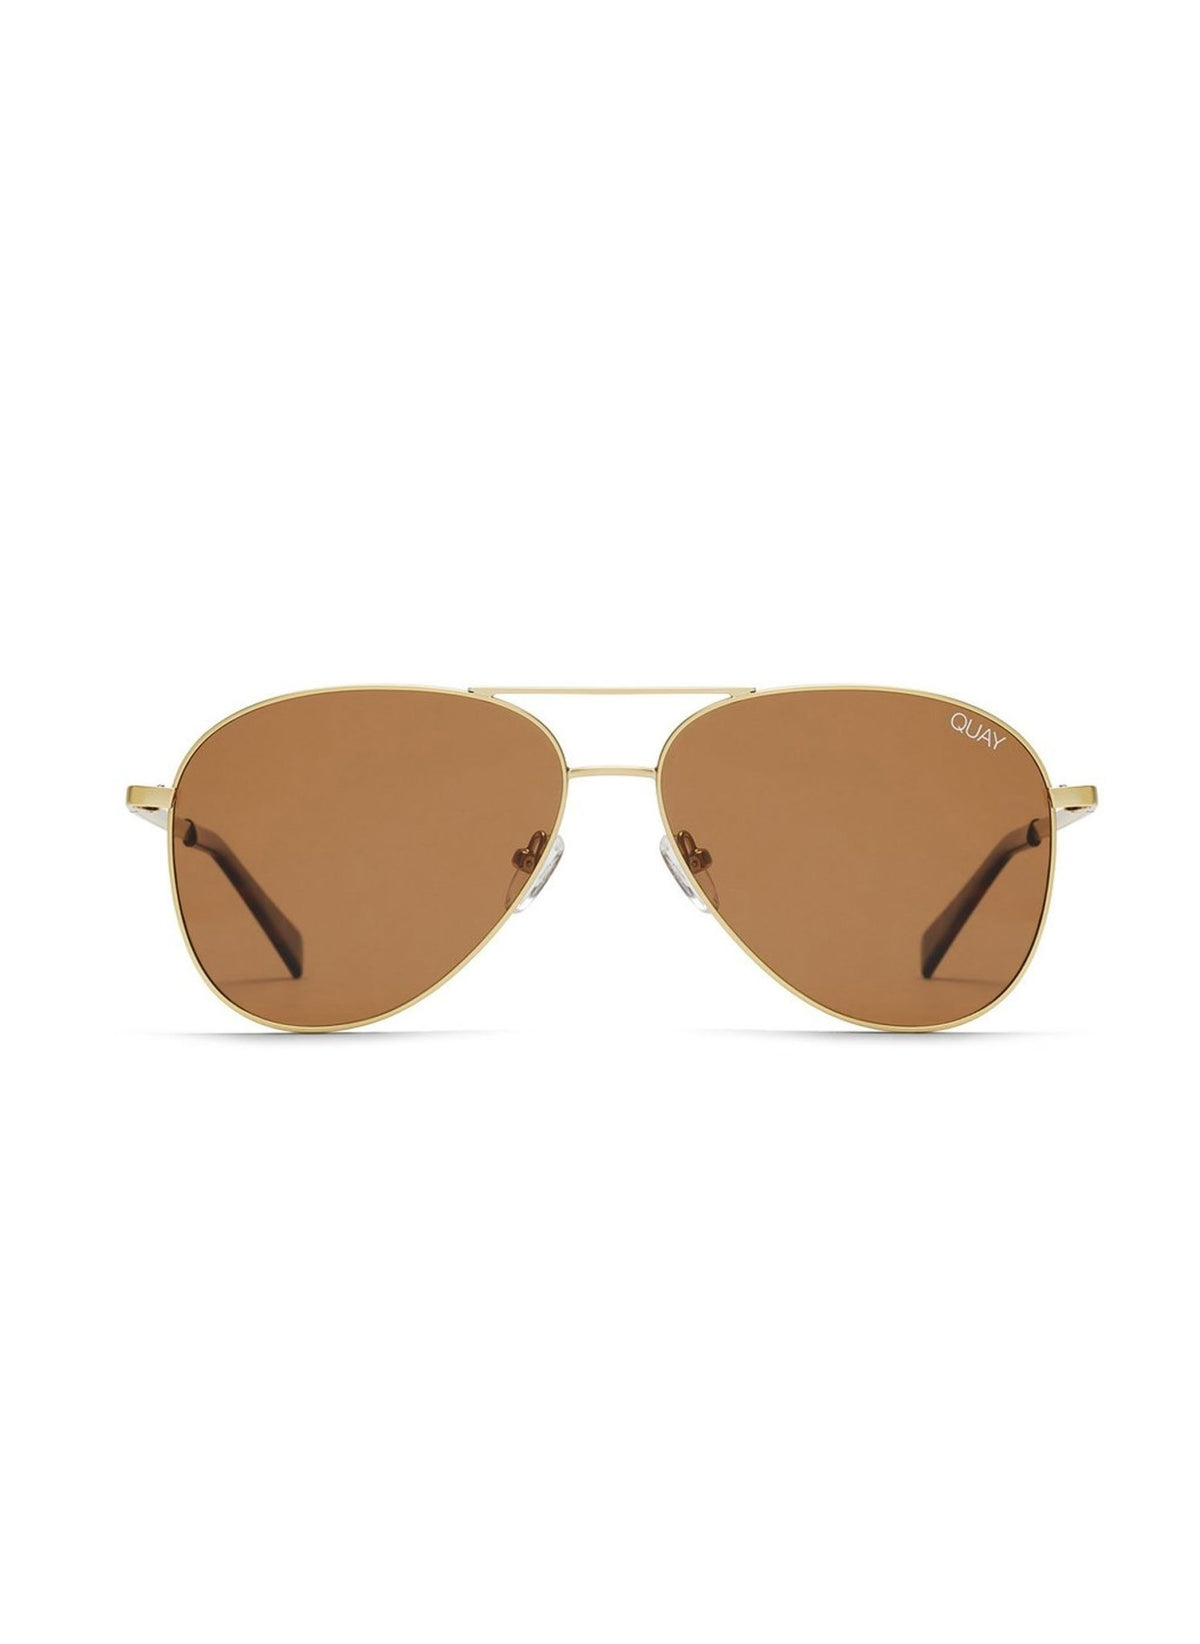 Quay Still Standing Sunglasses - Salty Mermaid Swim